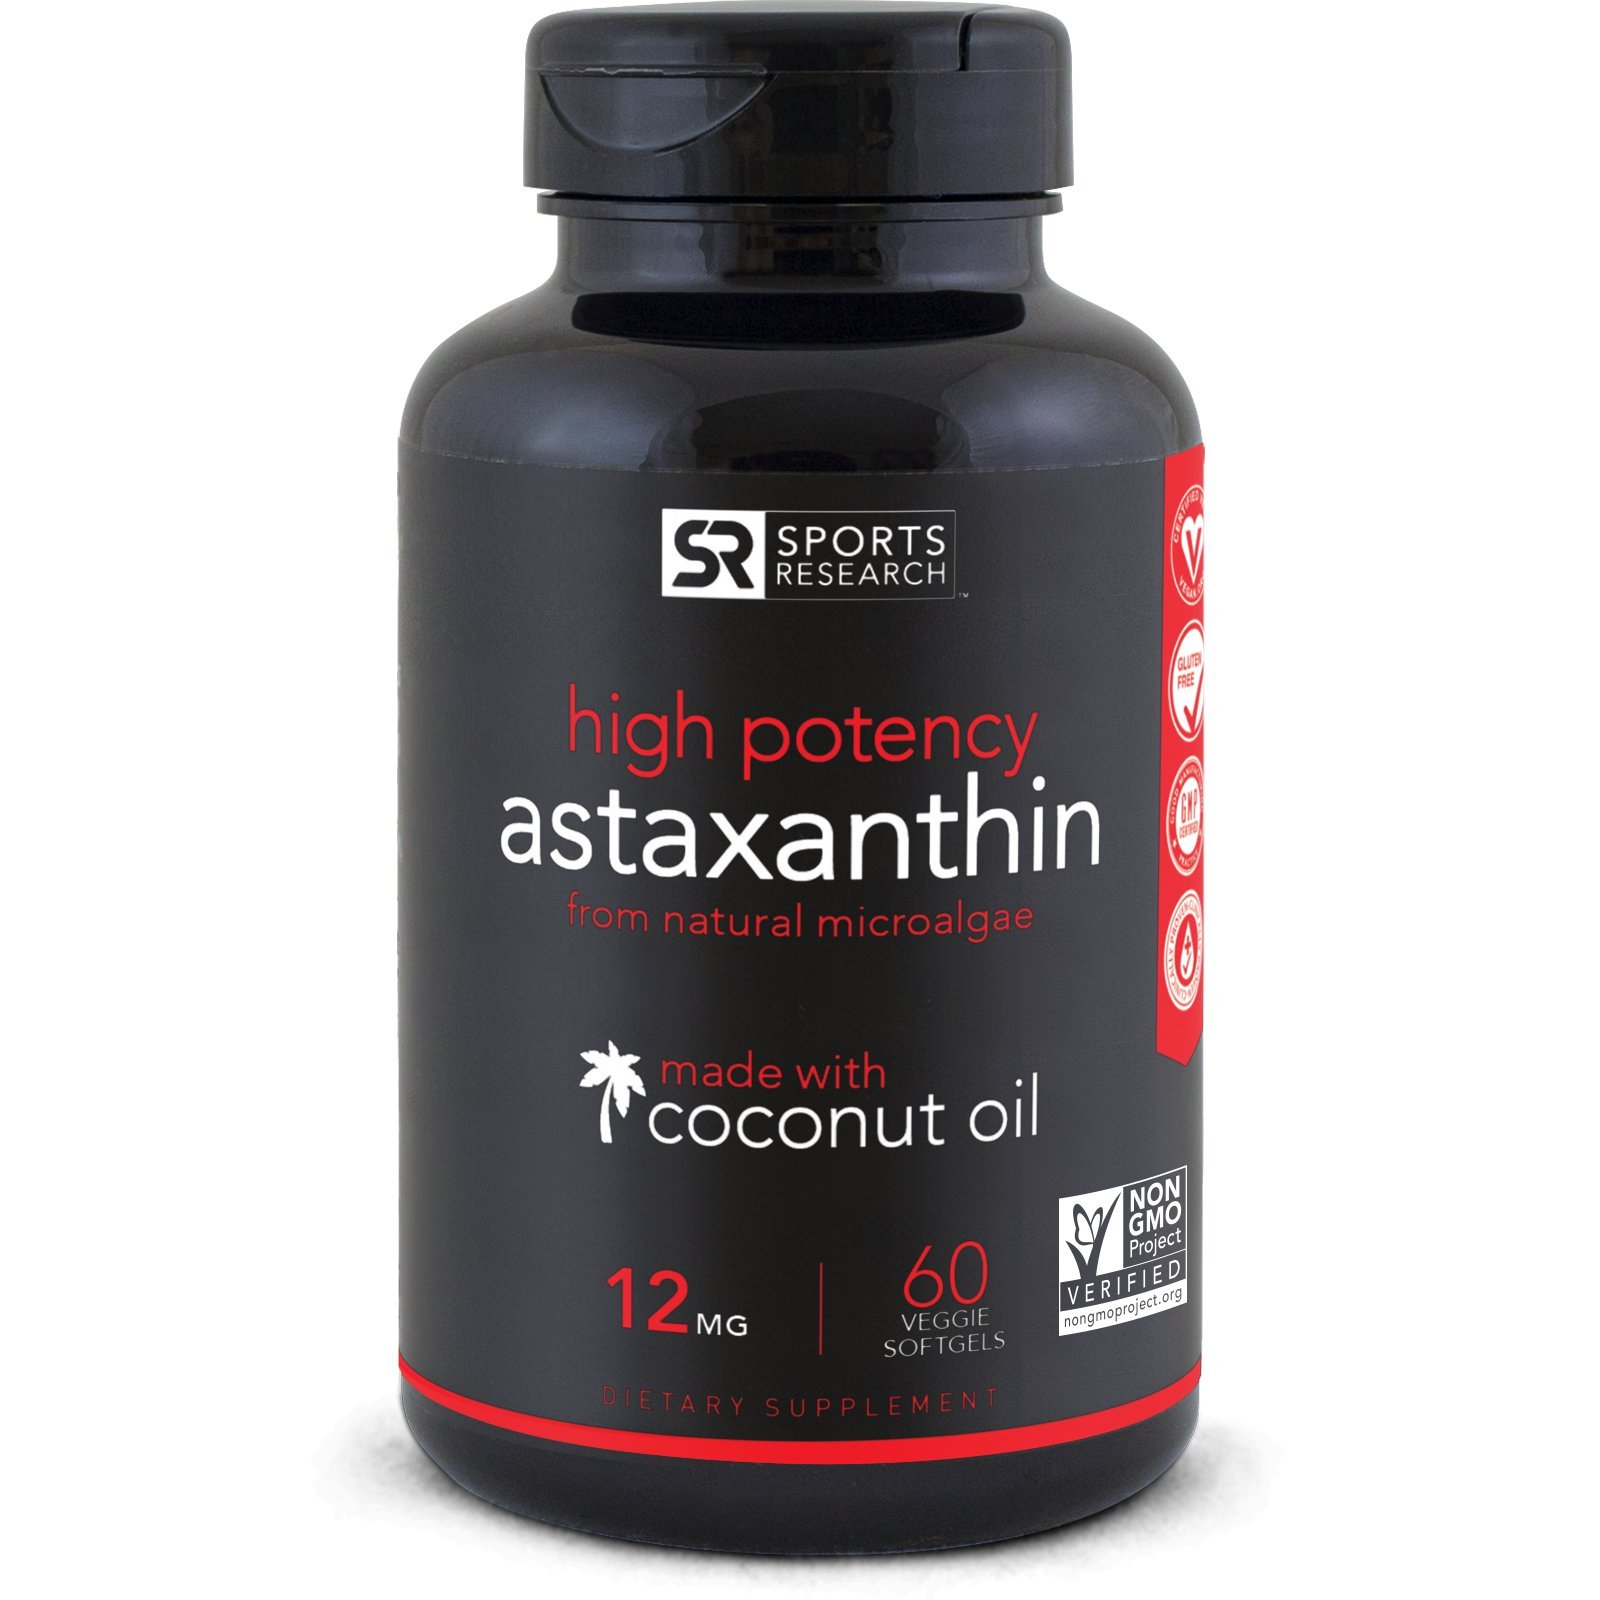 Astaxanthin (12mg) with Organic Coconut Oil; Non-Gmo Verified and Vegan Friendly| Powerful Antioxidant Naturally Supporting Joint, Skin, & Eye Health - 60 Veggie Softgels